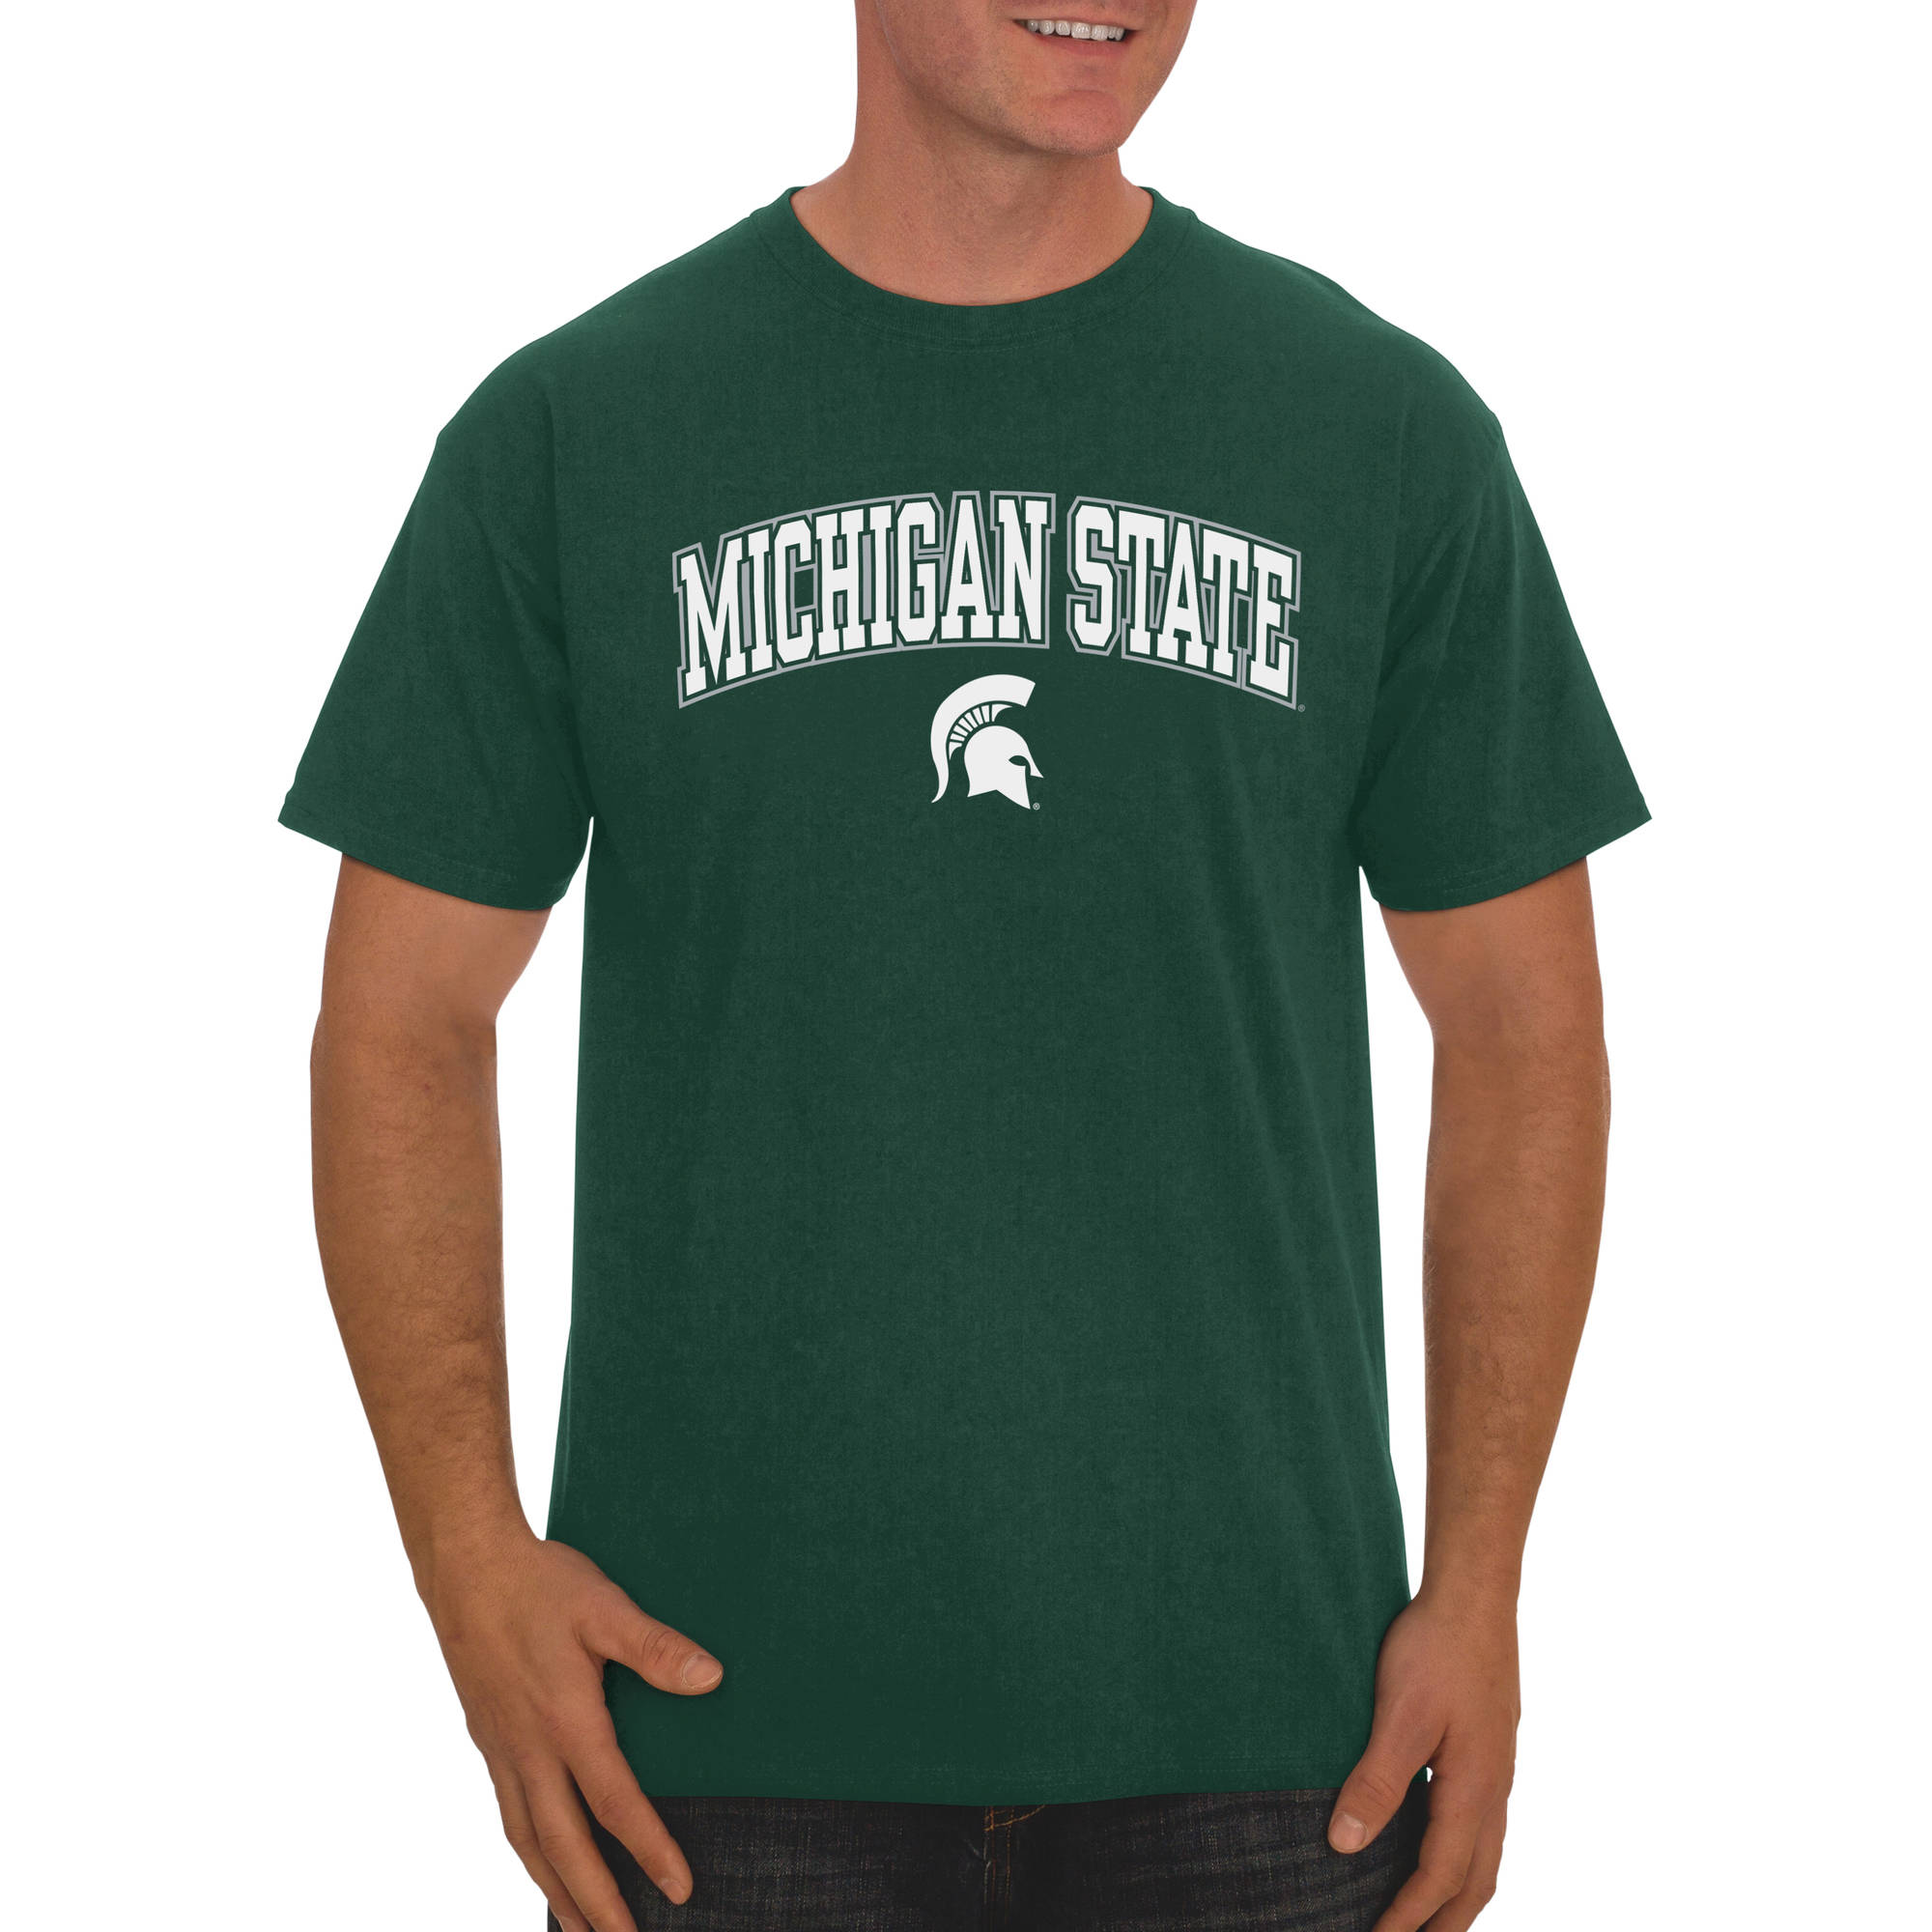 Russell NCAA Michigan State Spartans, Men's Classic Cotton T-Shirt